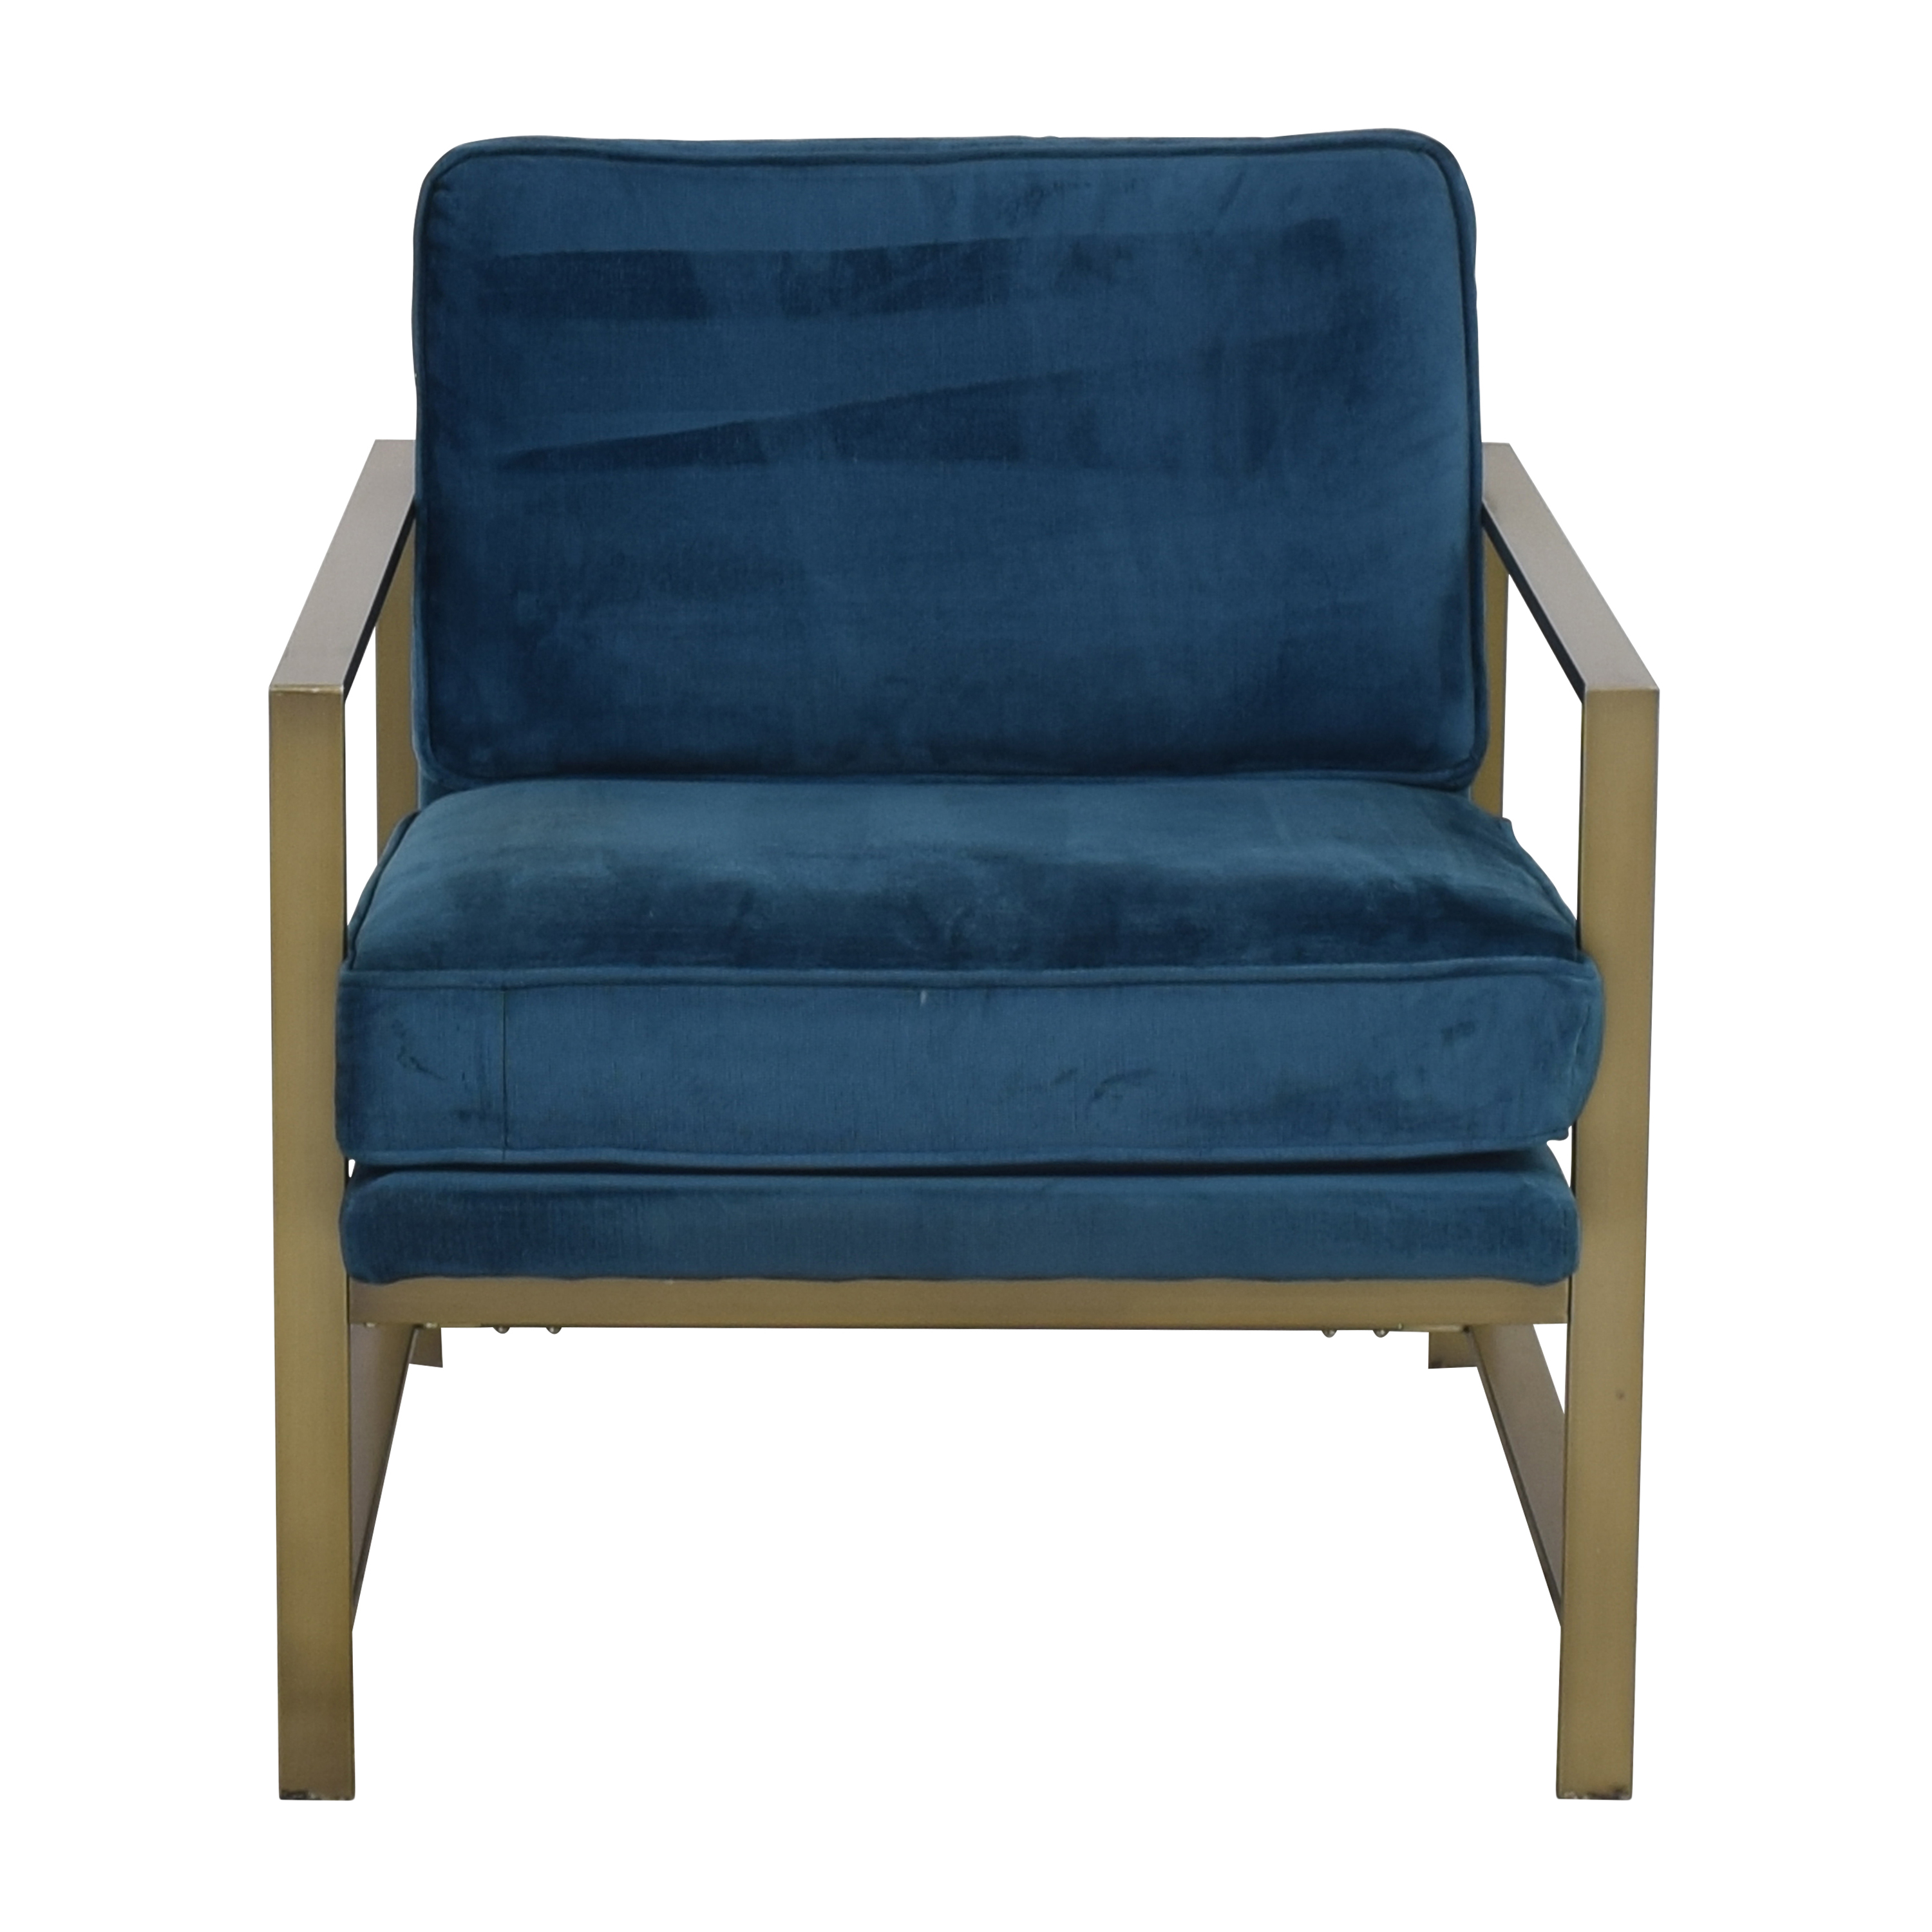 West Elm West Elm Upholstered Chair on sale